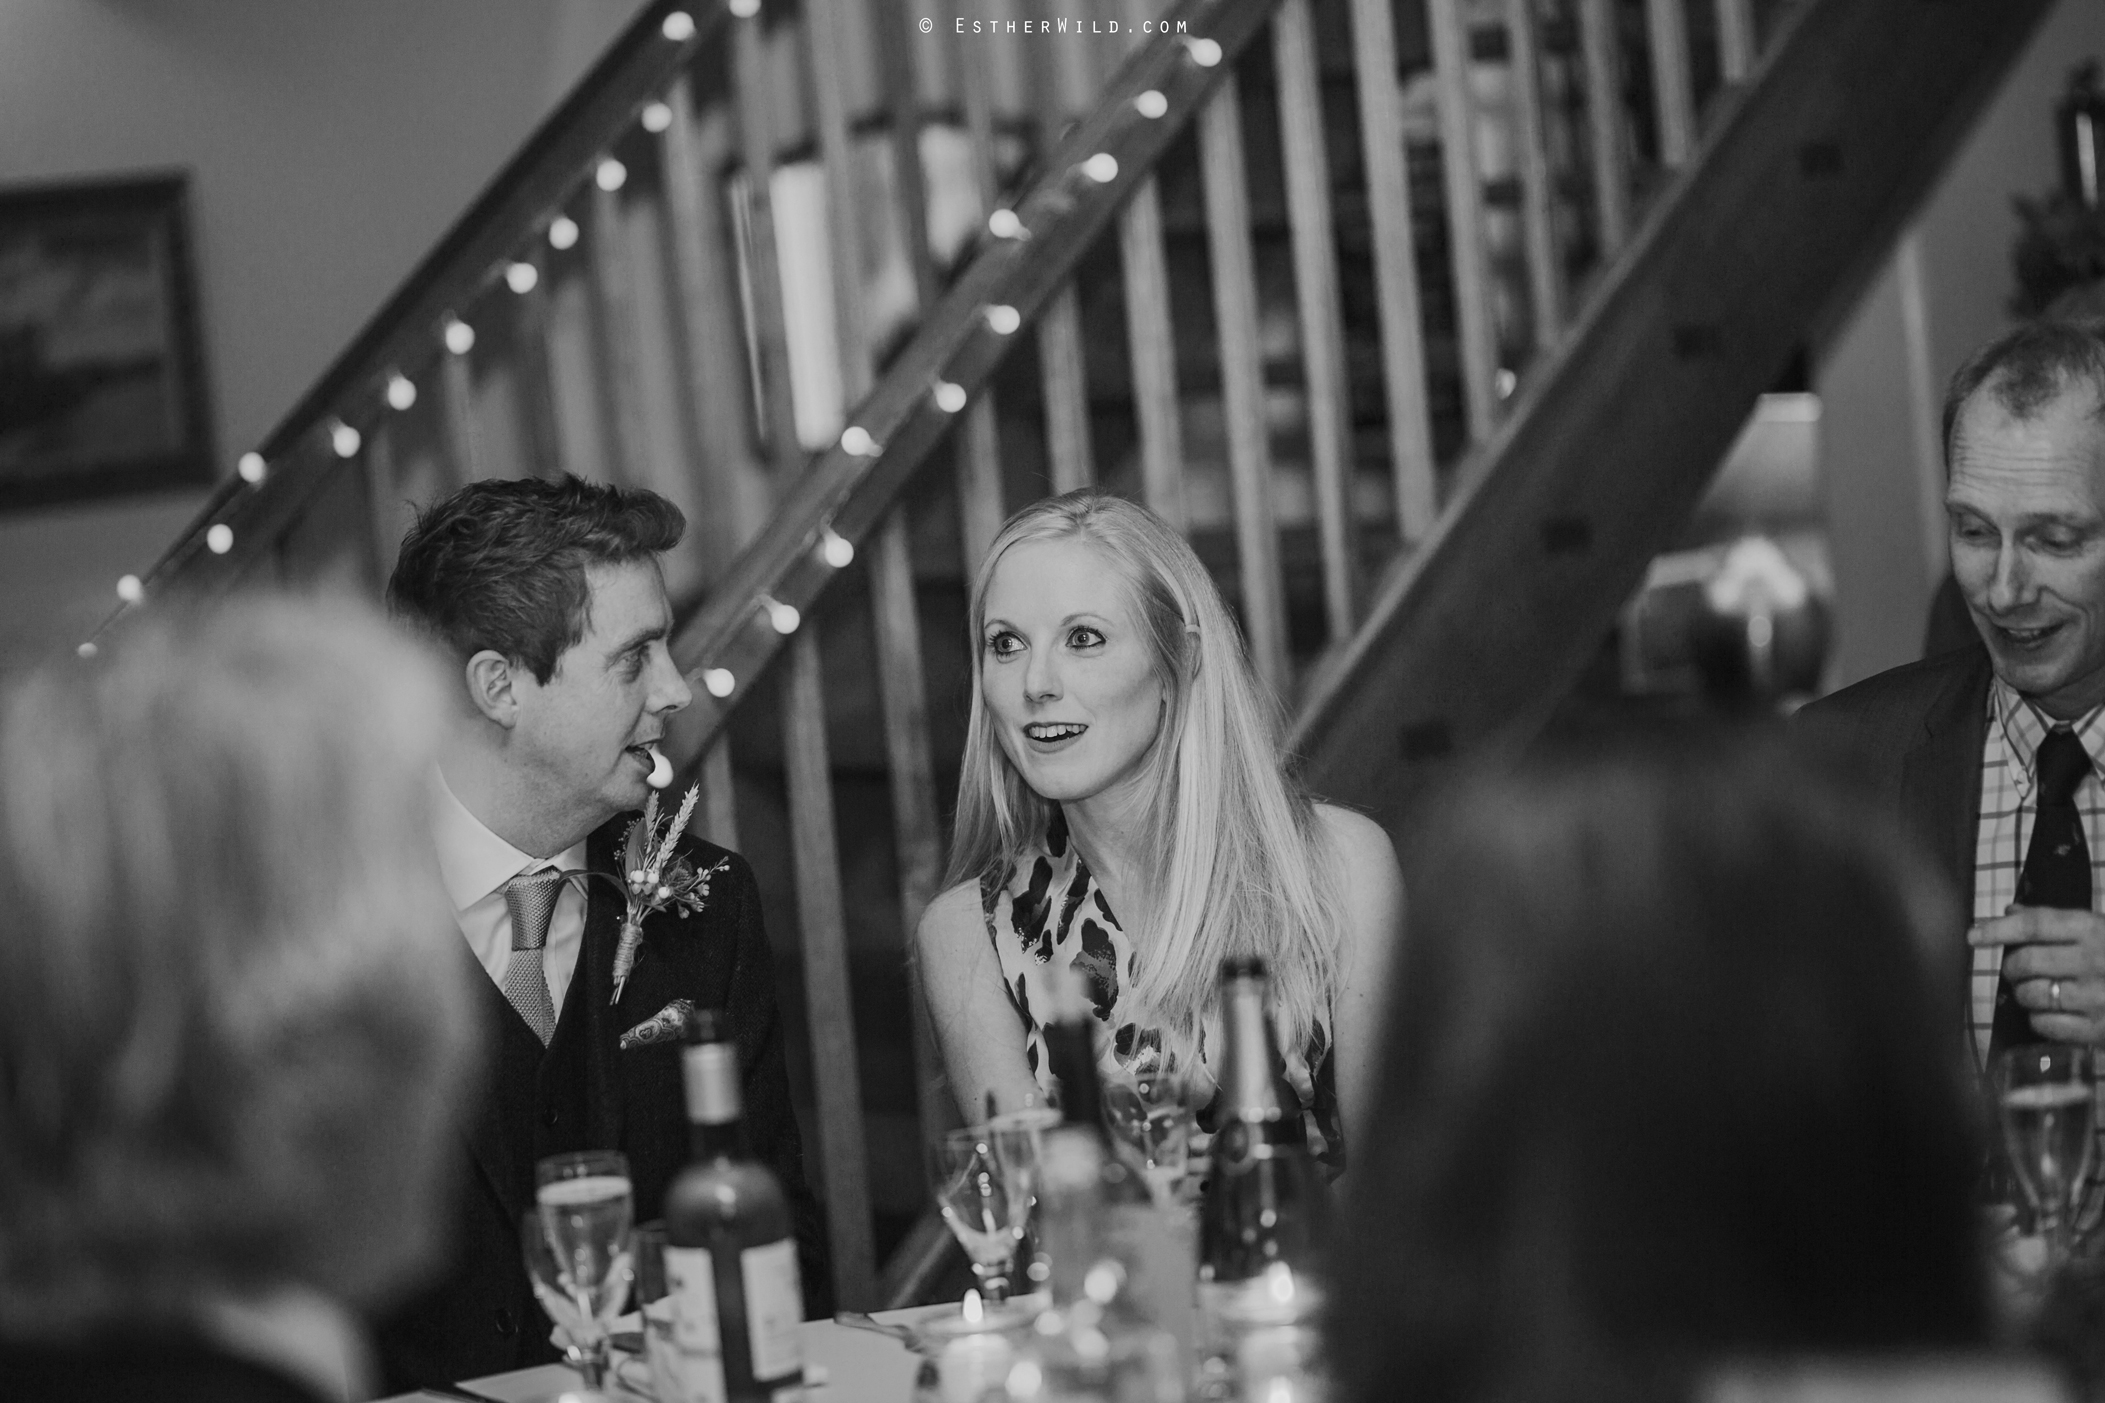 Wedding_Photographer_Chaucer_Barn_Holt_Norfolk_Country_Rustic_Venue_Copyright_Esther_Wild_IMG_1574_Z72A0762-1.jpg